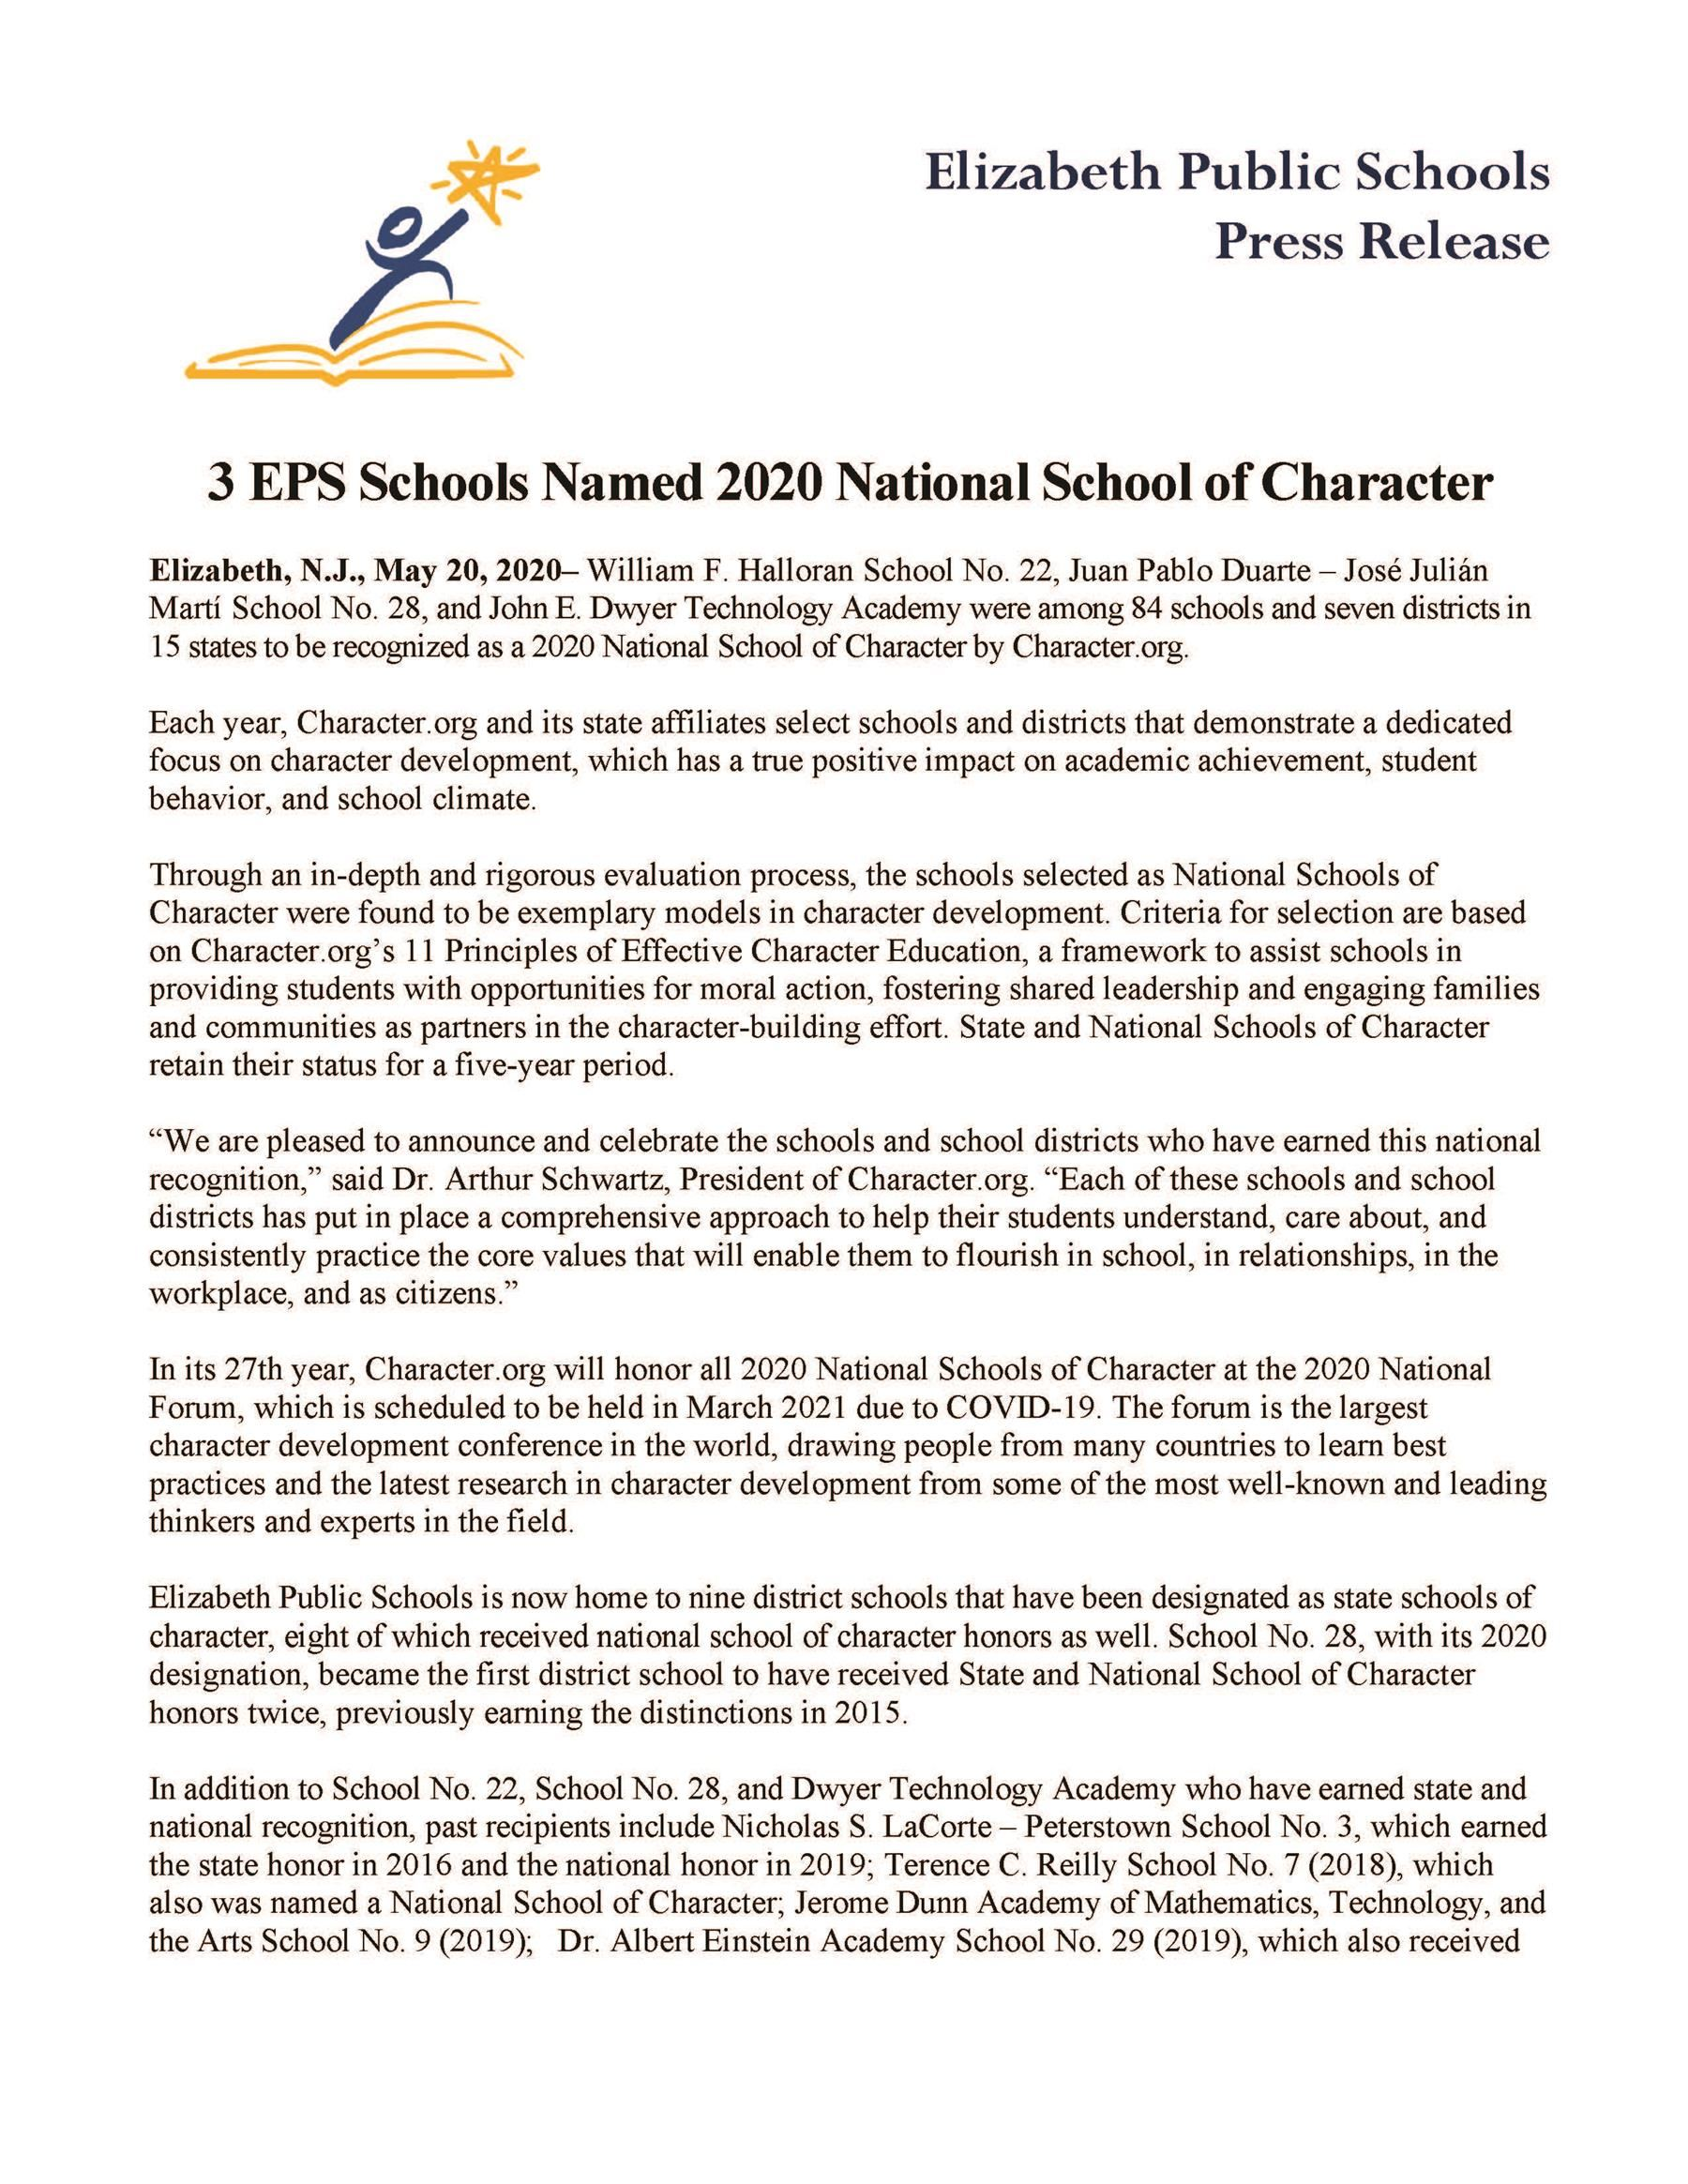 3 EPS Schools Named 2020 National School of Character